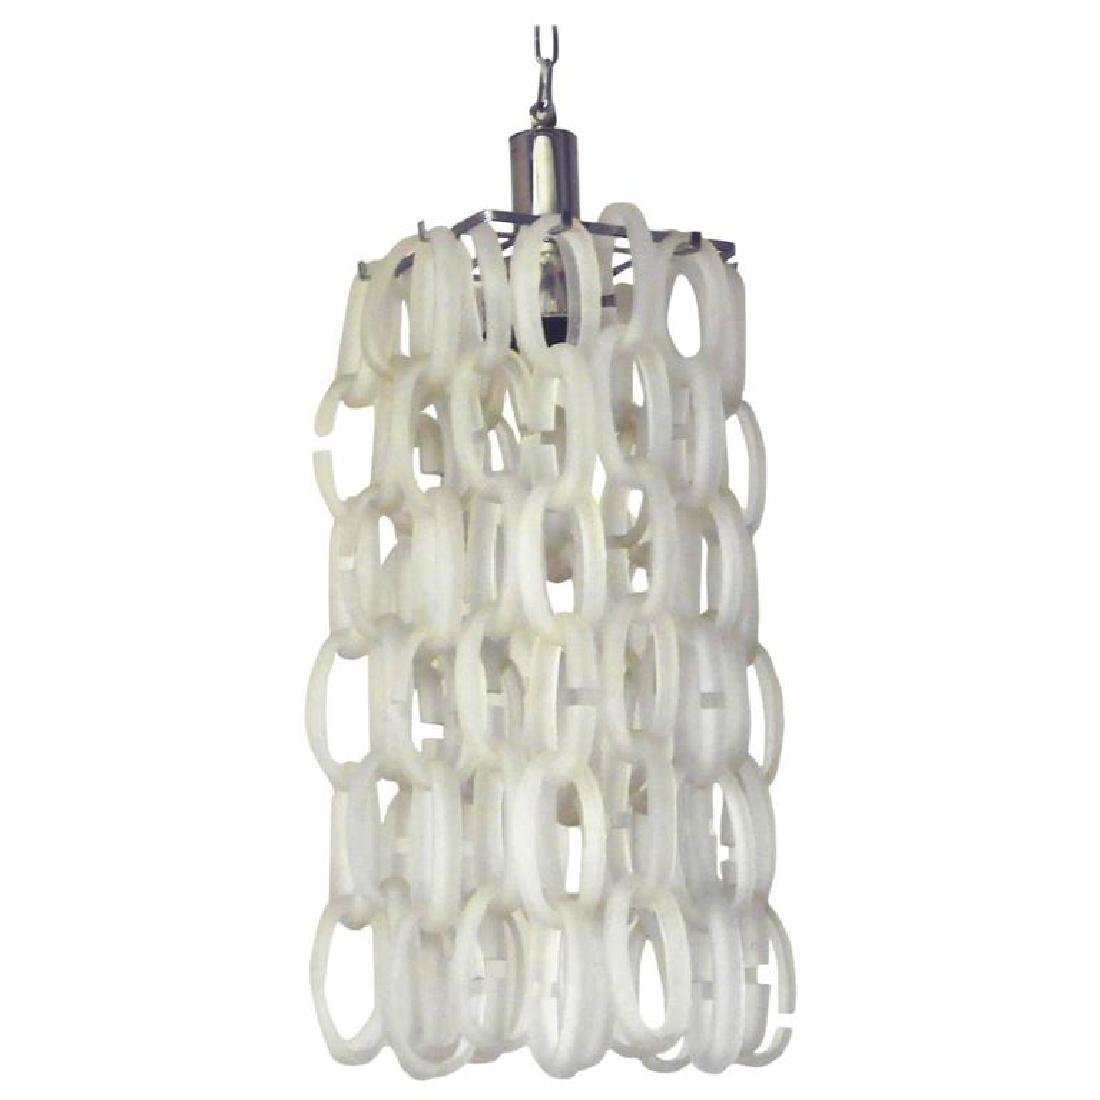 Italian Frosted Murano Glass Links Chandelier